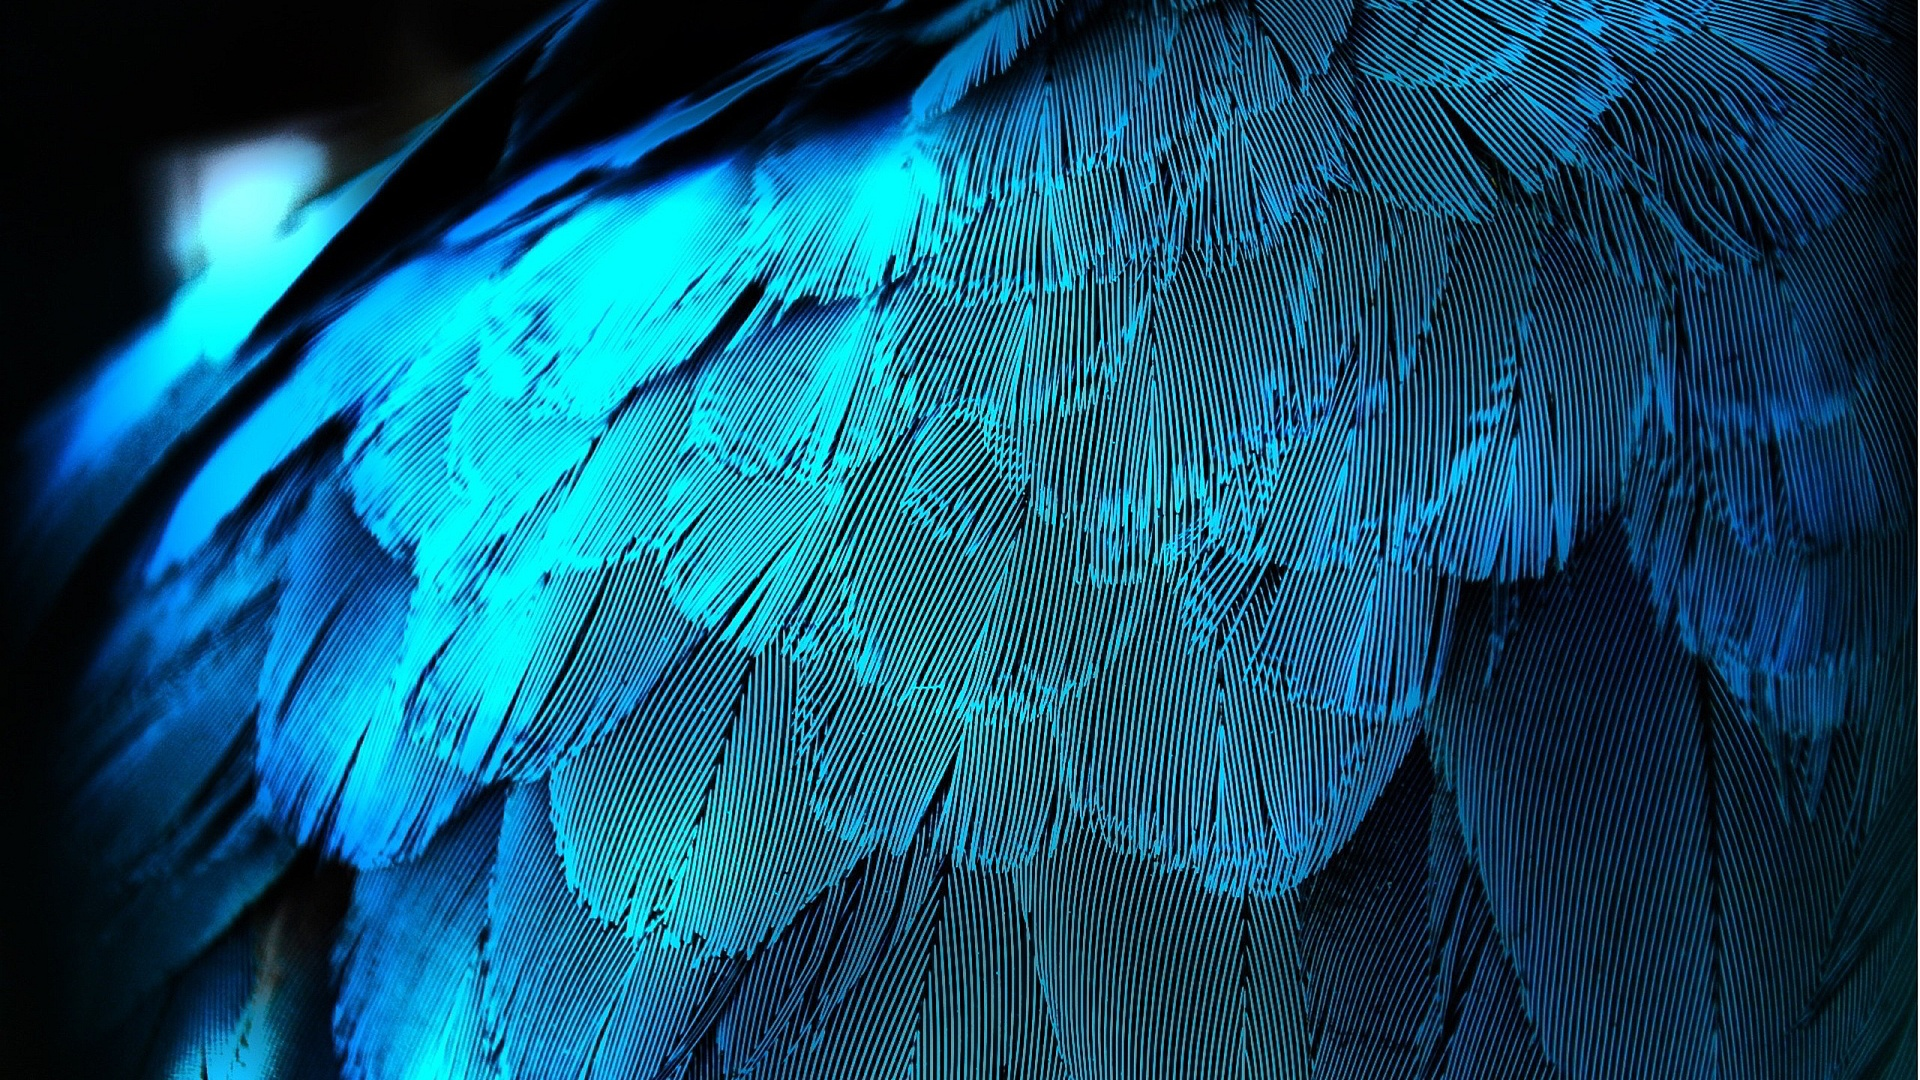 wallpaper.wiki-Pictures-blue-feather-1920x1080-PIC-WPB003119